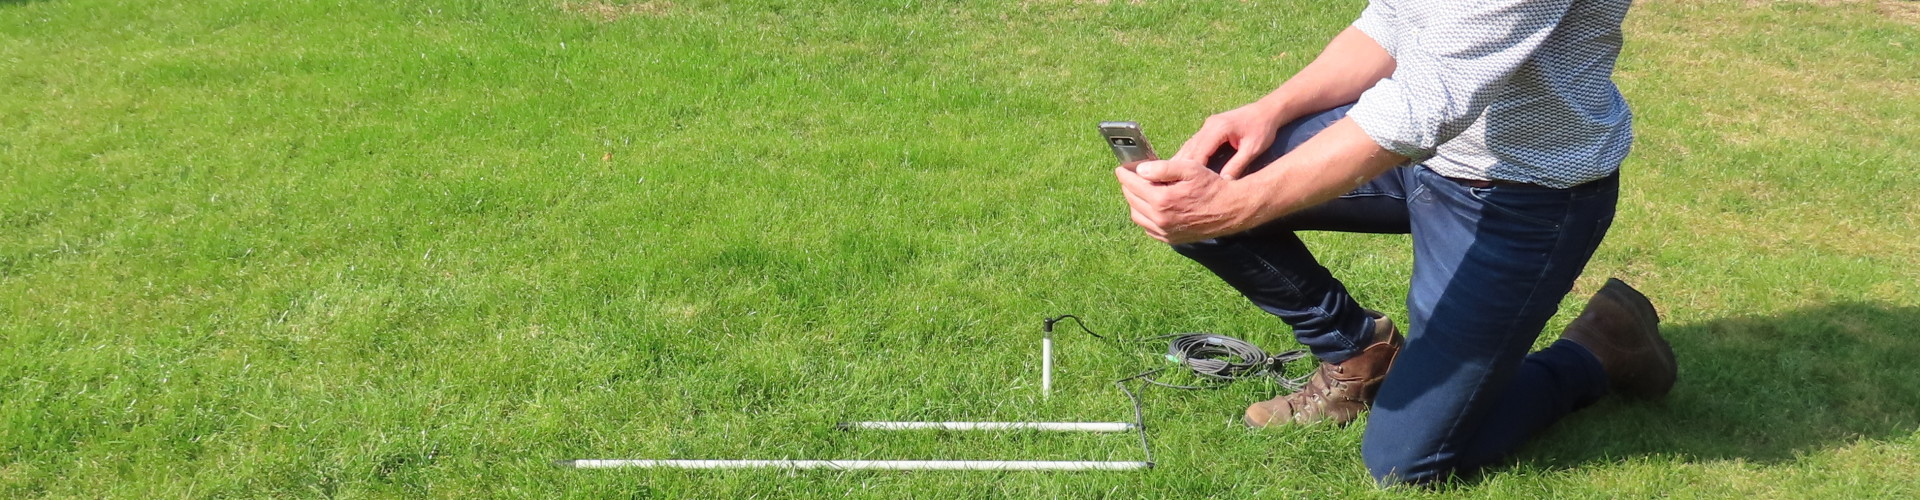 SWAP-instruments-soil-Redox-probes-ORP-monitoring